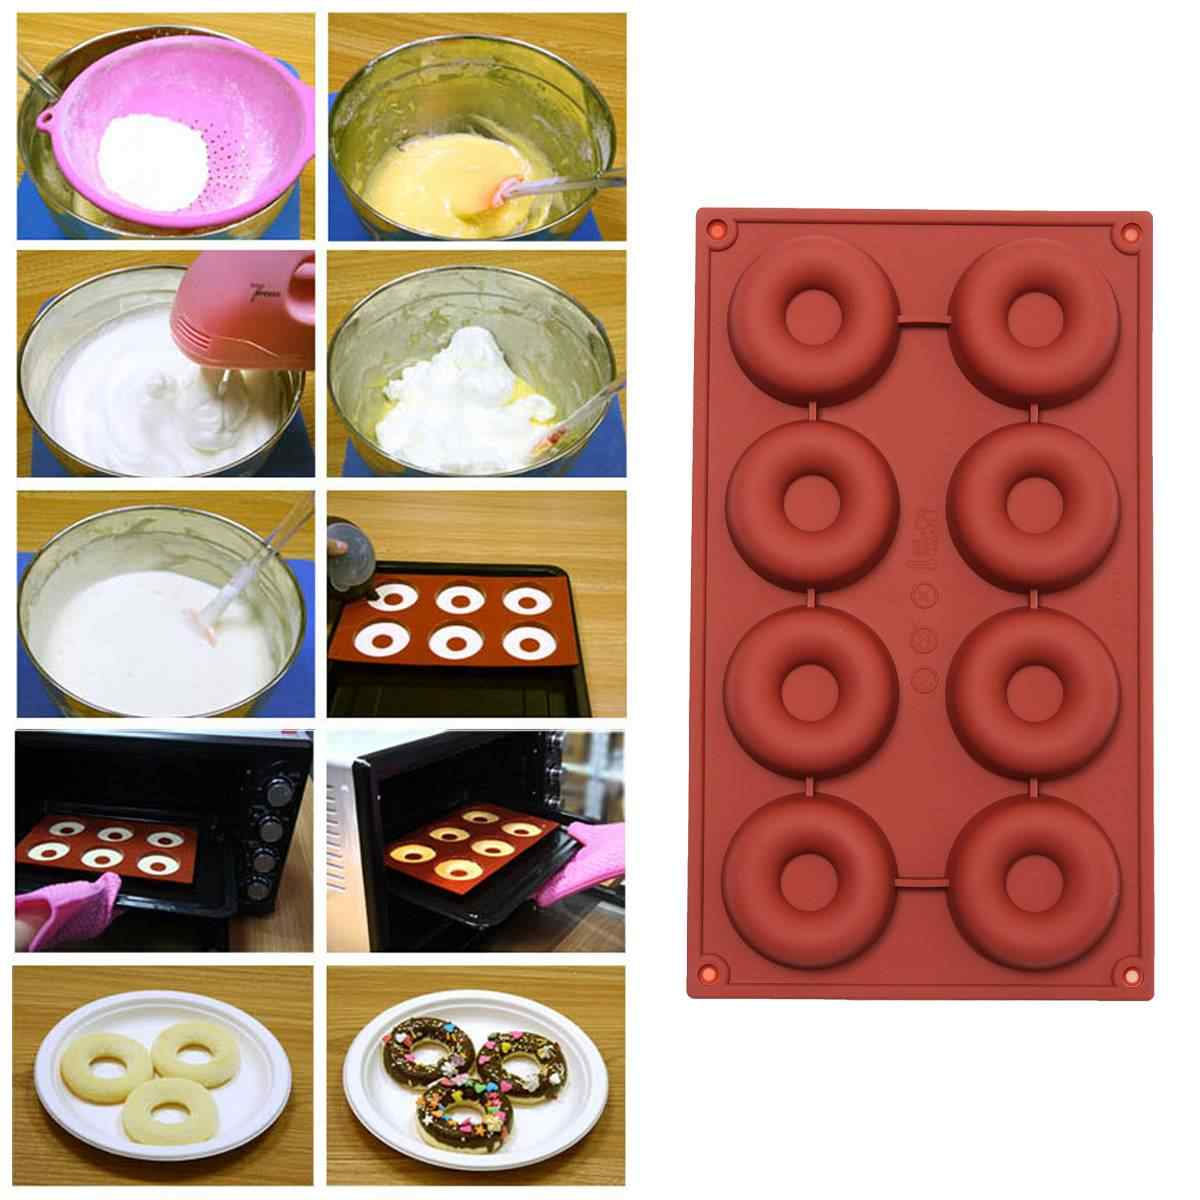 1Pcs Round Shaped  8 Holes Silicone Donut Doughnut Chocolate Muffin Pan Maker Soap Cake Mold Baking Mould Angel Circle Pudding